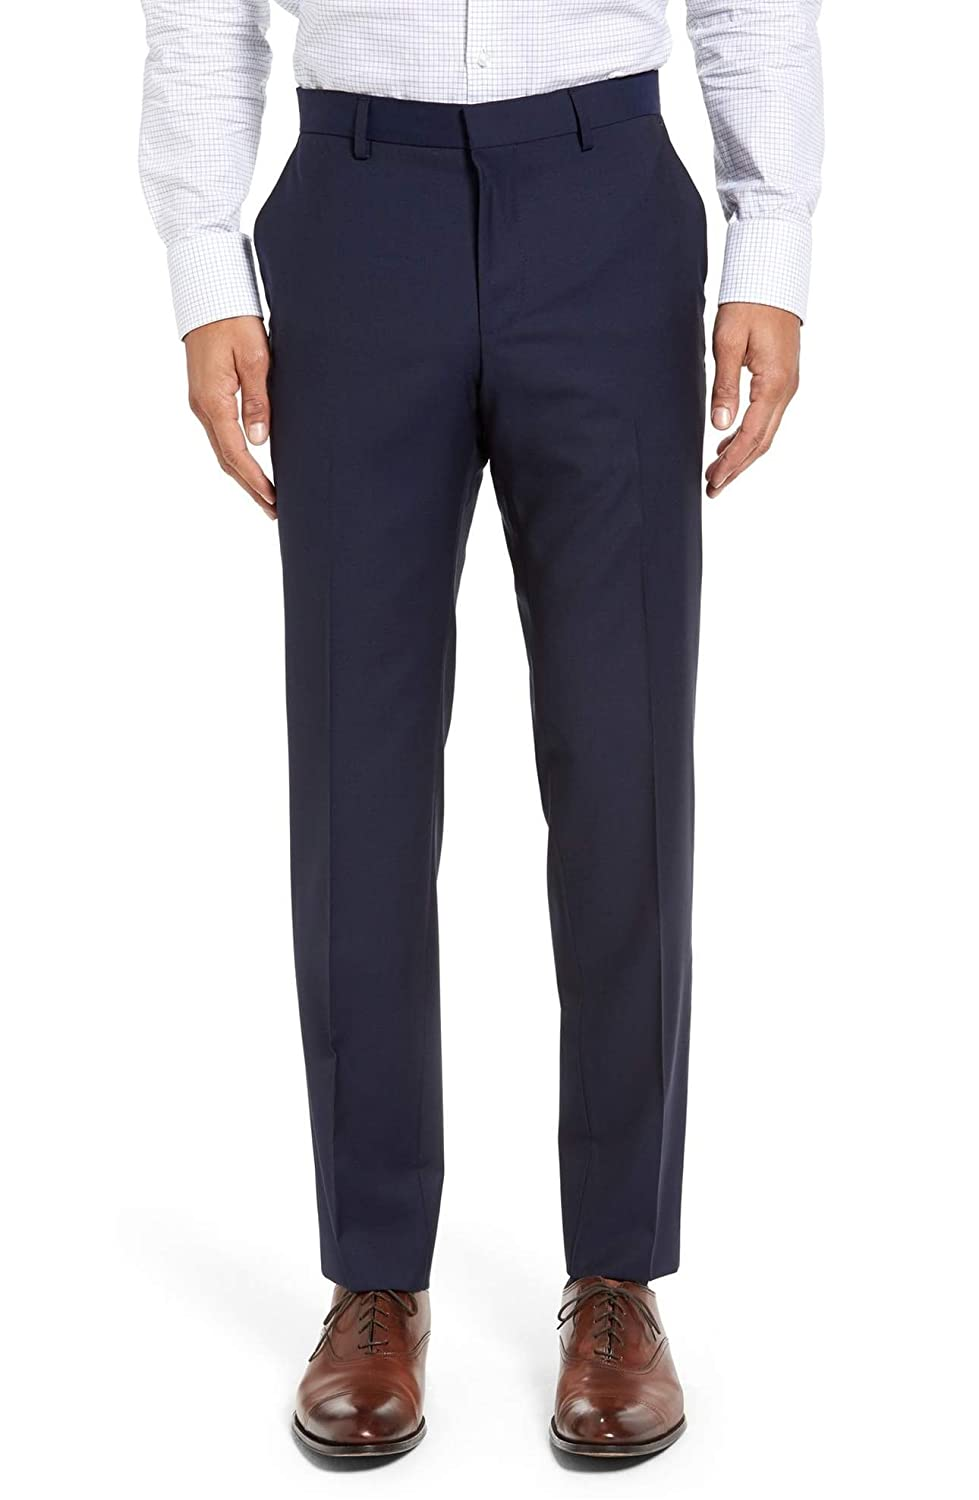 Hugo Boss Genius Virgin Wool Trousers Wool Flat Front Solid Dark Royal Blue Men's Dress Pants by Hugo Style C-GeniusS - 50296881